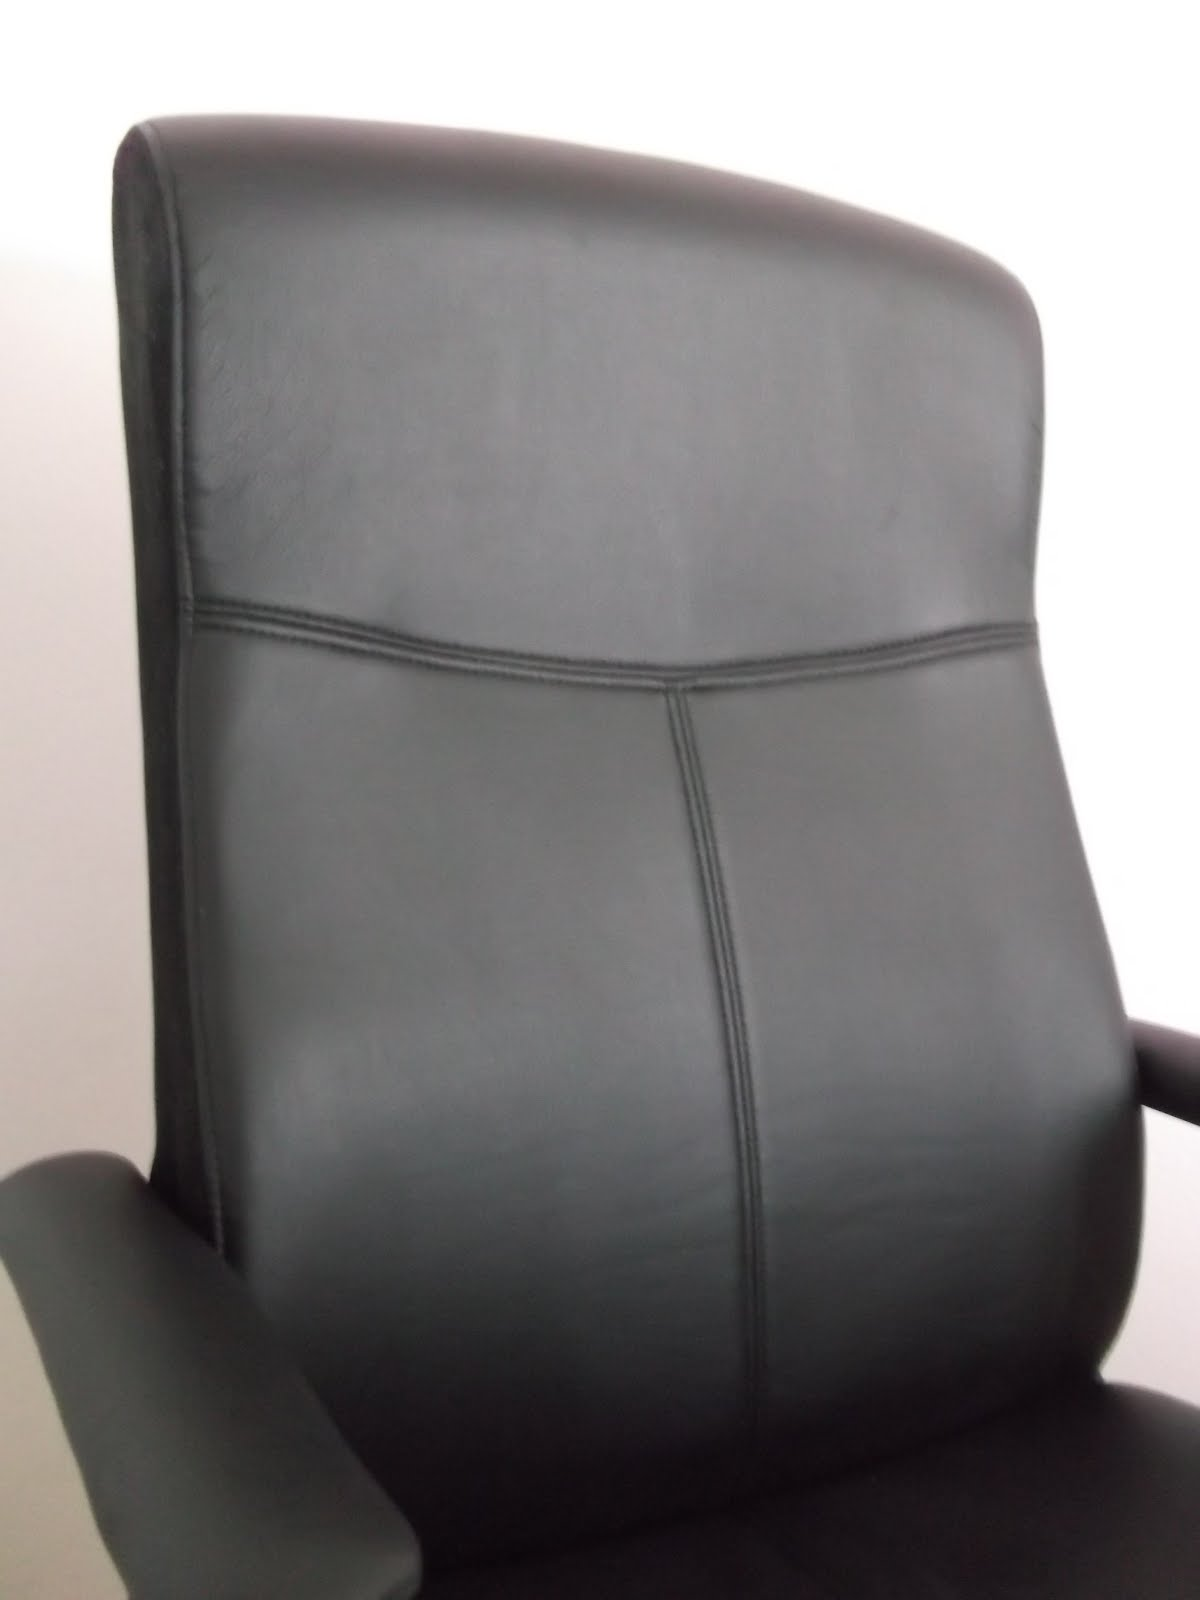 ikea chairs office. Ikea Malkolm Office Swivel Chair Chairs